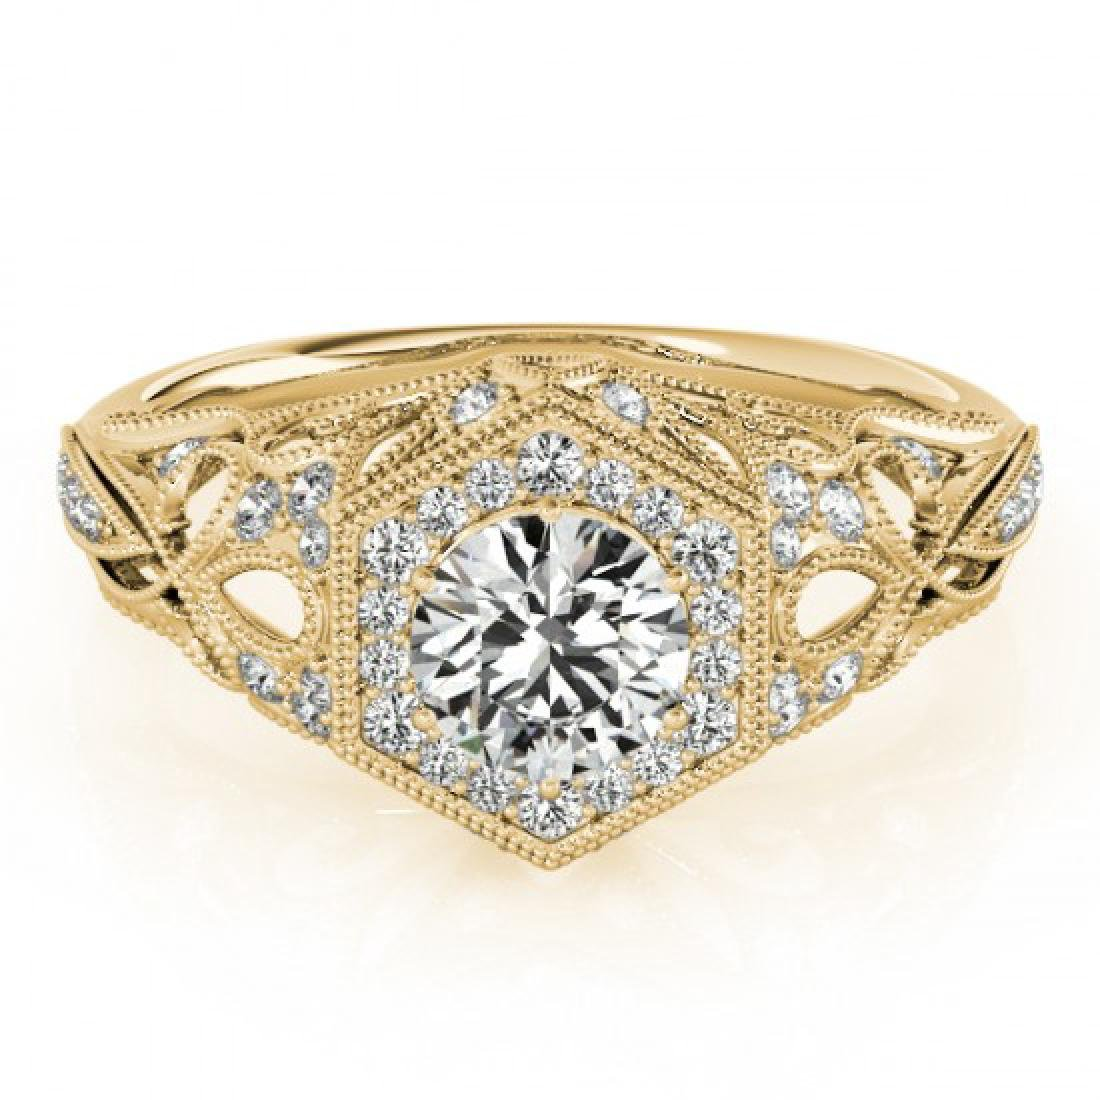 1.4 CTW VS/SI Diamond Solitaire Halo Ring 18K Yellow